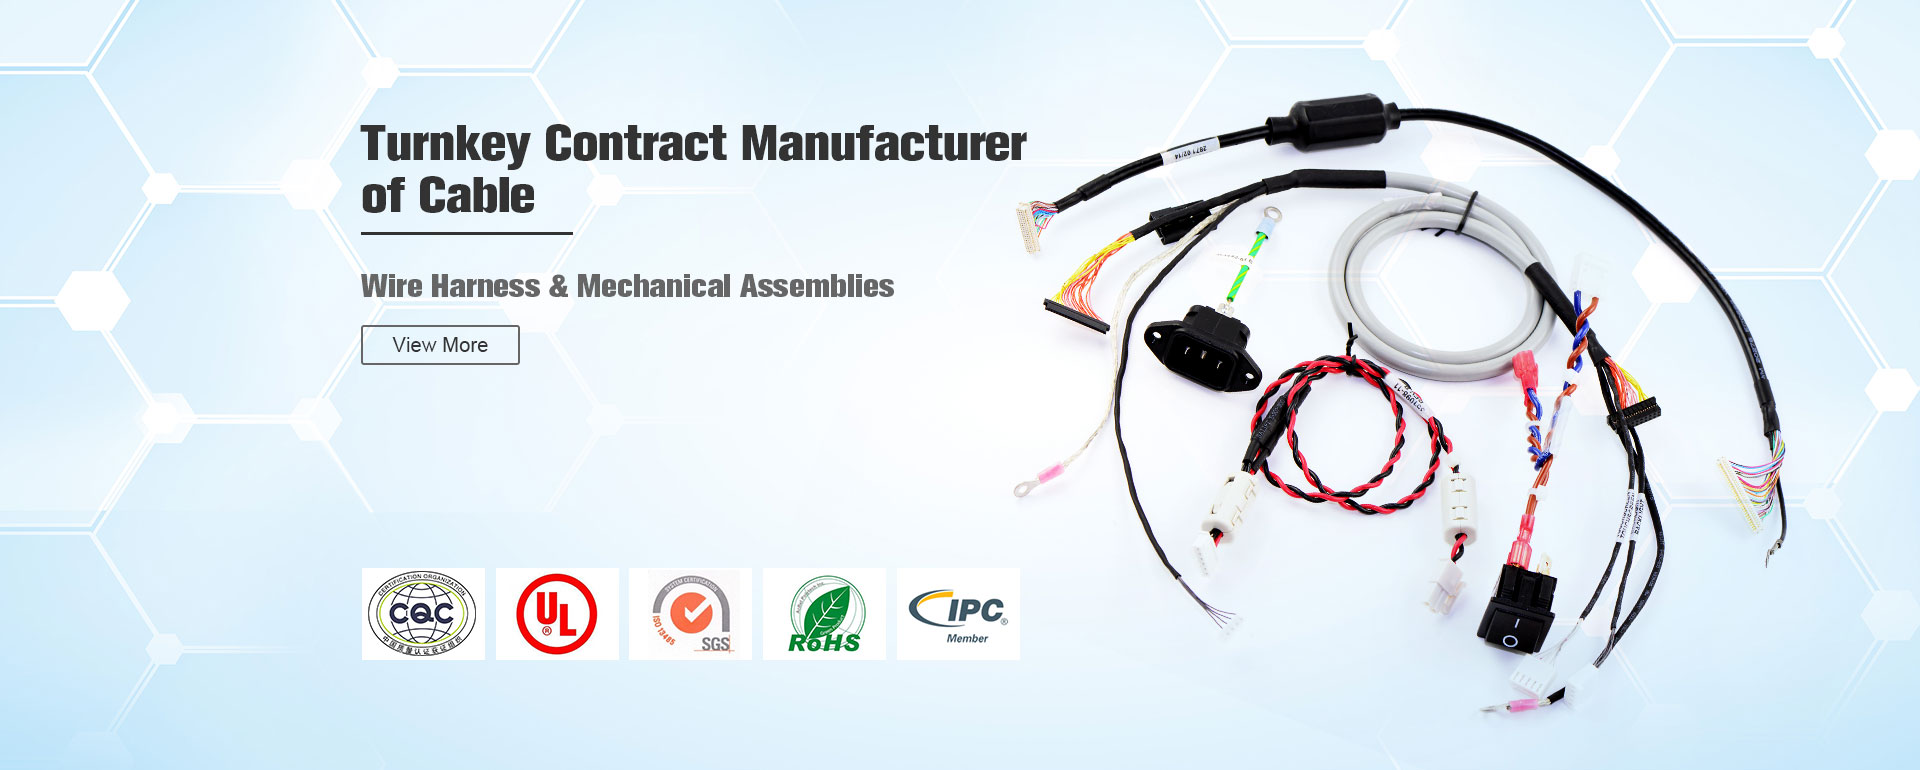 Turnkey Contract Manufacturer of Cable